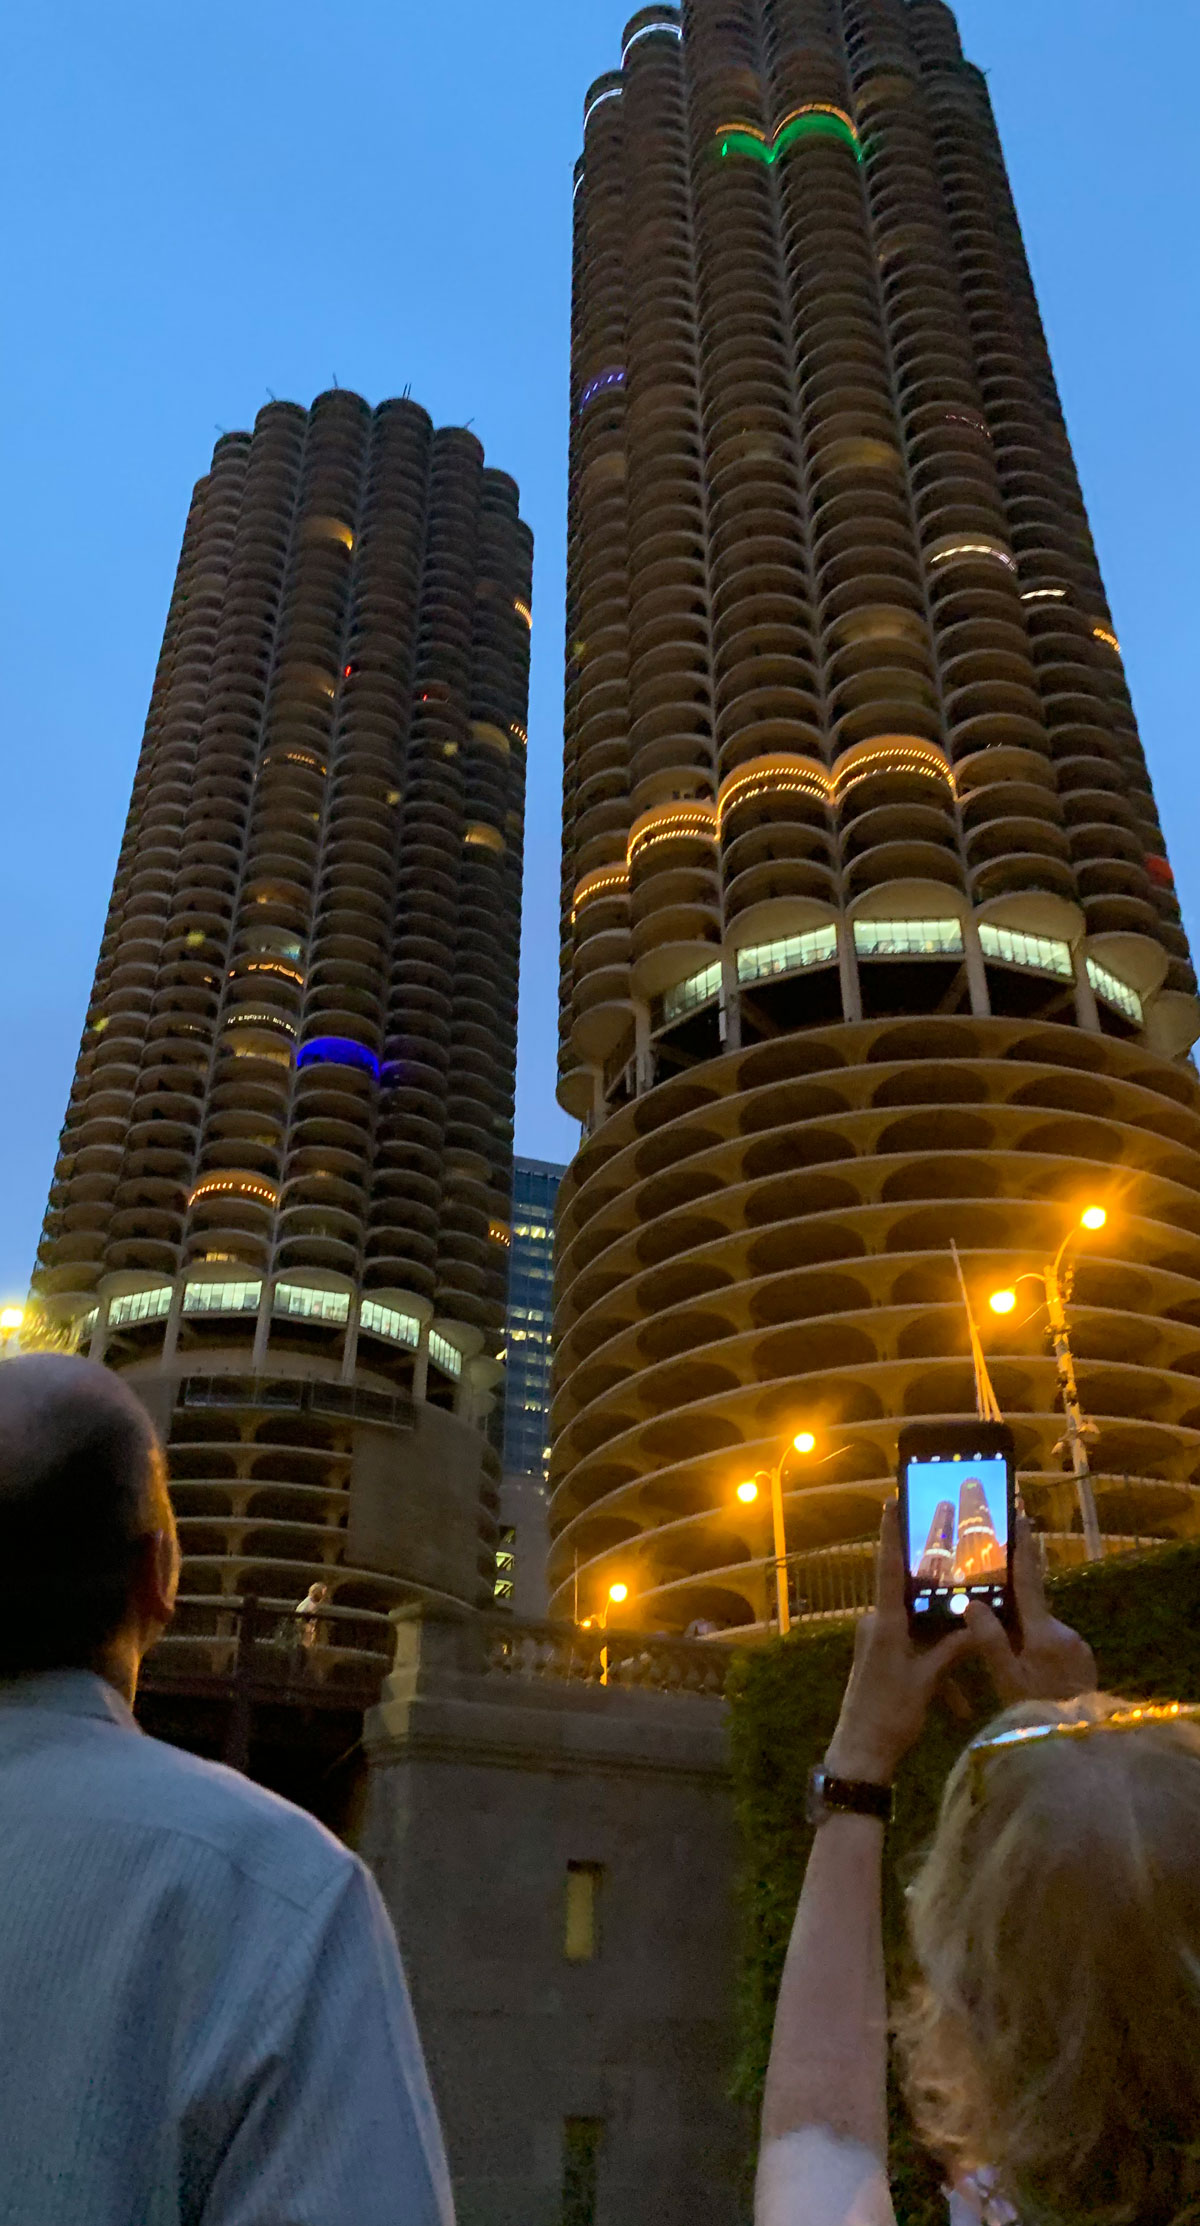 A man and woman look up at two skyscrapers